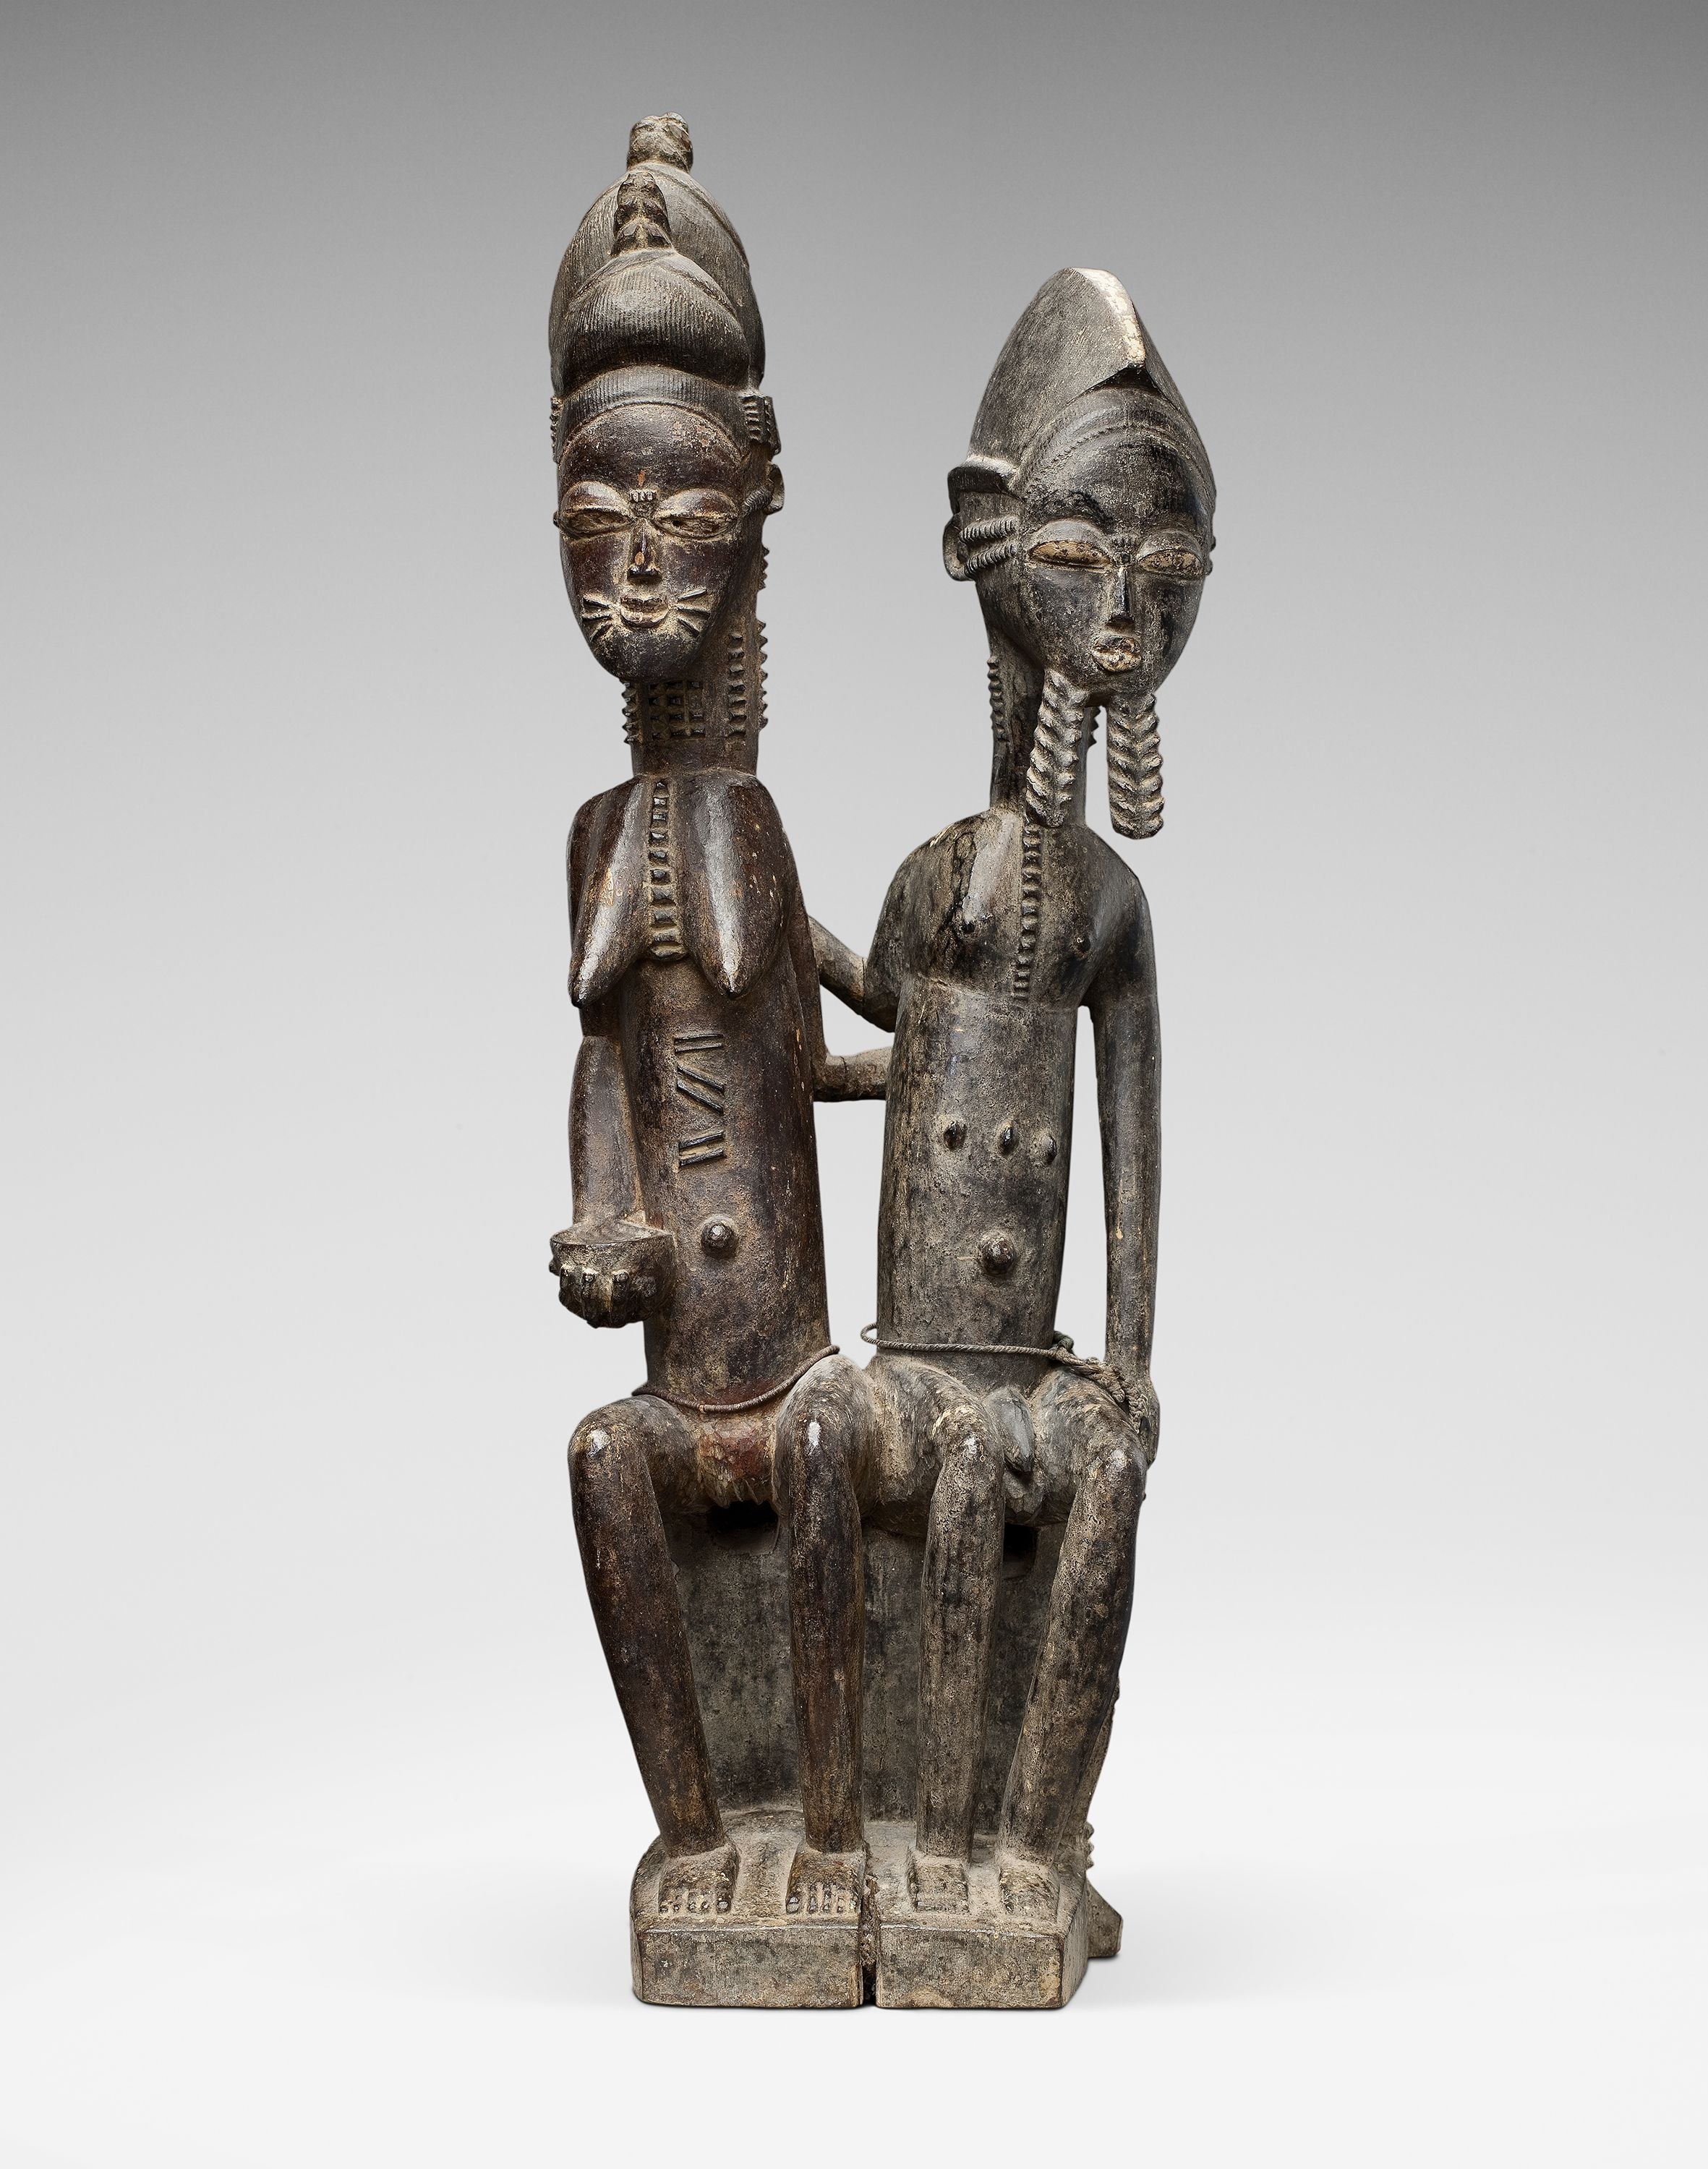 This affectionate seated couple was made by an unknown master in circa 1910. Only five seated Baule couples, carved out of one piece of wood, are known to us. Bernard de Grunne will offer during TEFAF Maastricht 2016 a collection of 18 rare seated statues from the Baule tribe (Central Ivory Coast).